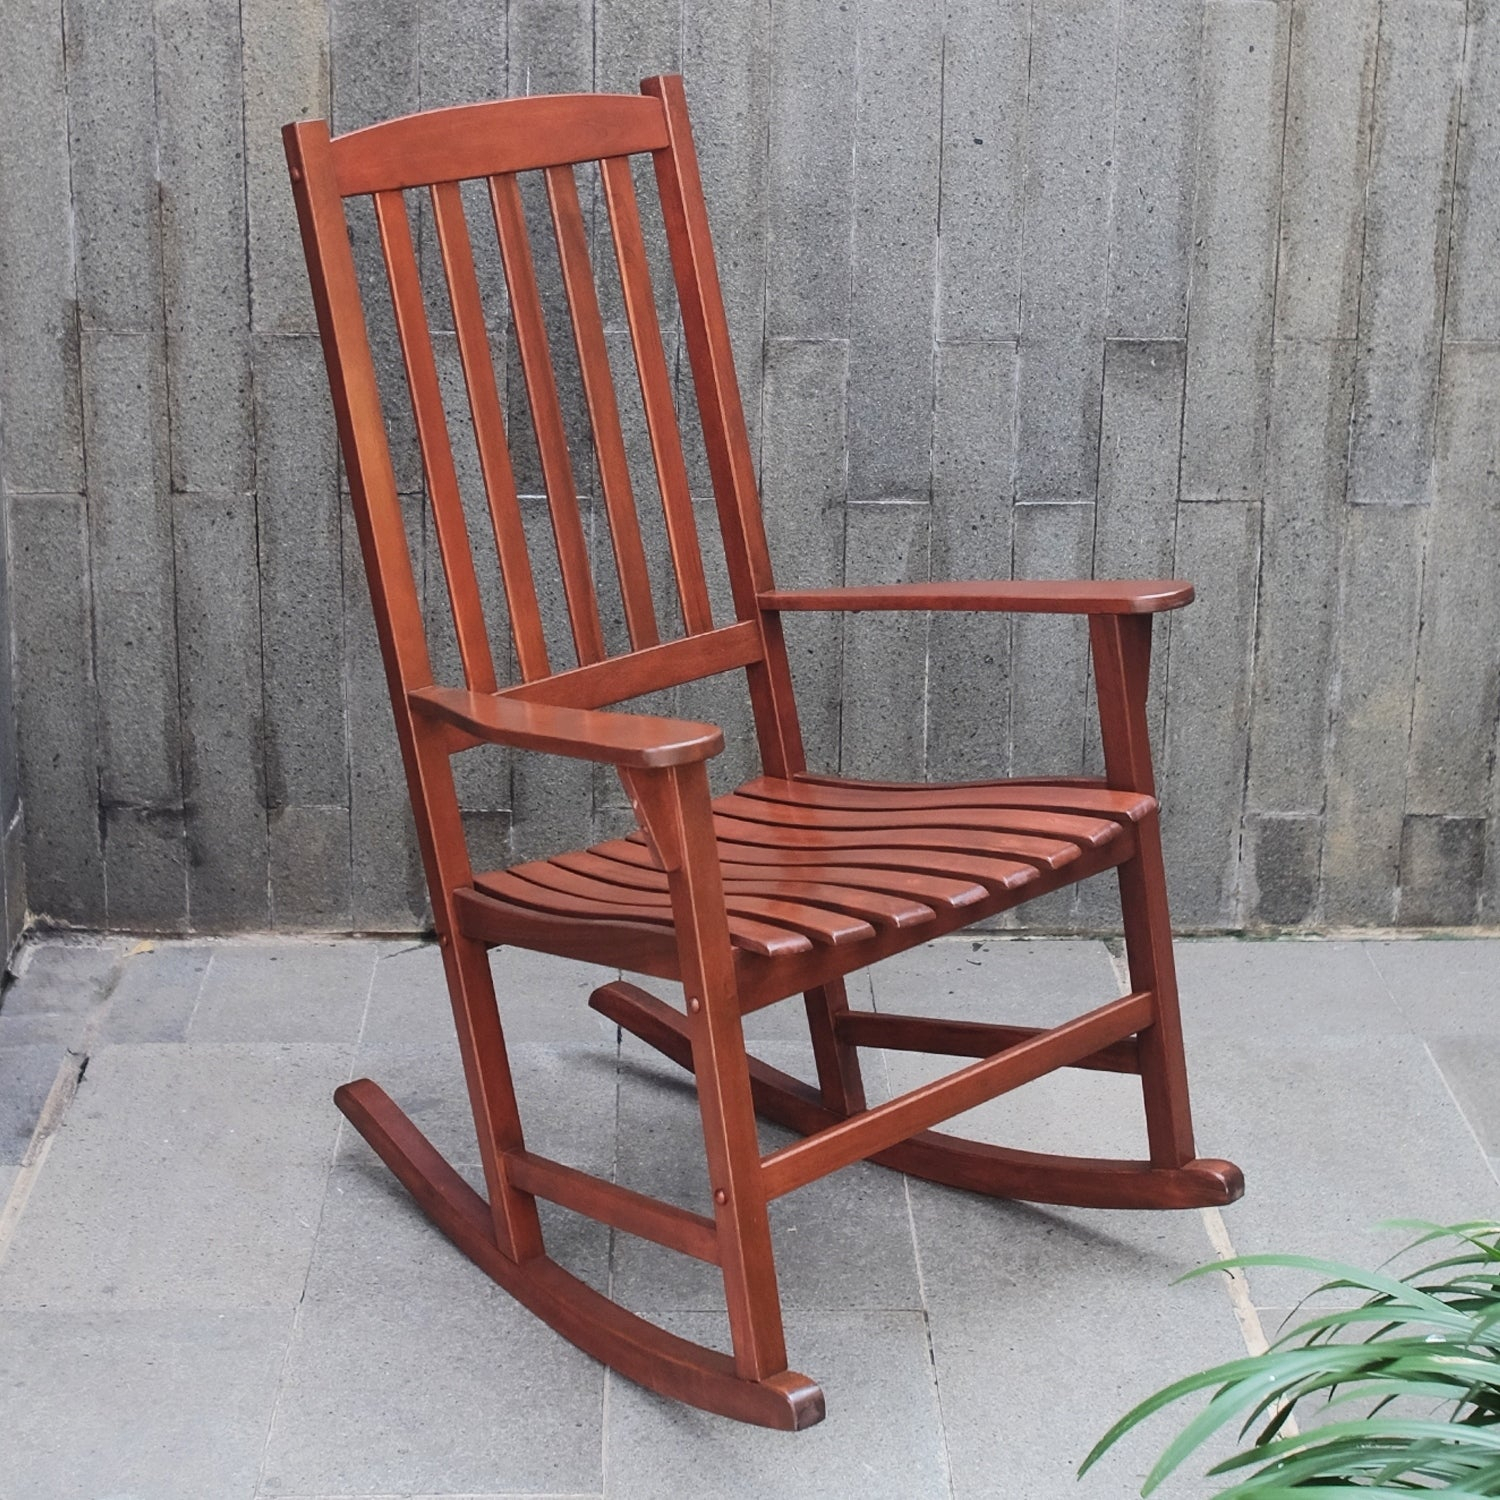 Cambridge Casual Alston Porch Rocking Chair – Natural Brown Regarding Natural Brown Wood Folding Rocking Chairs (#6 of 20)